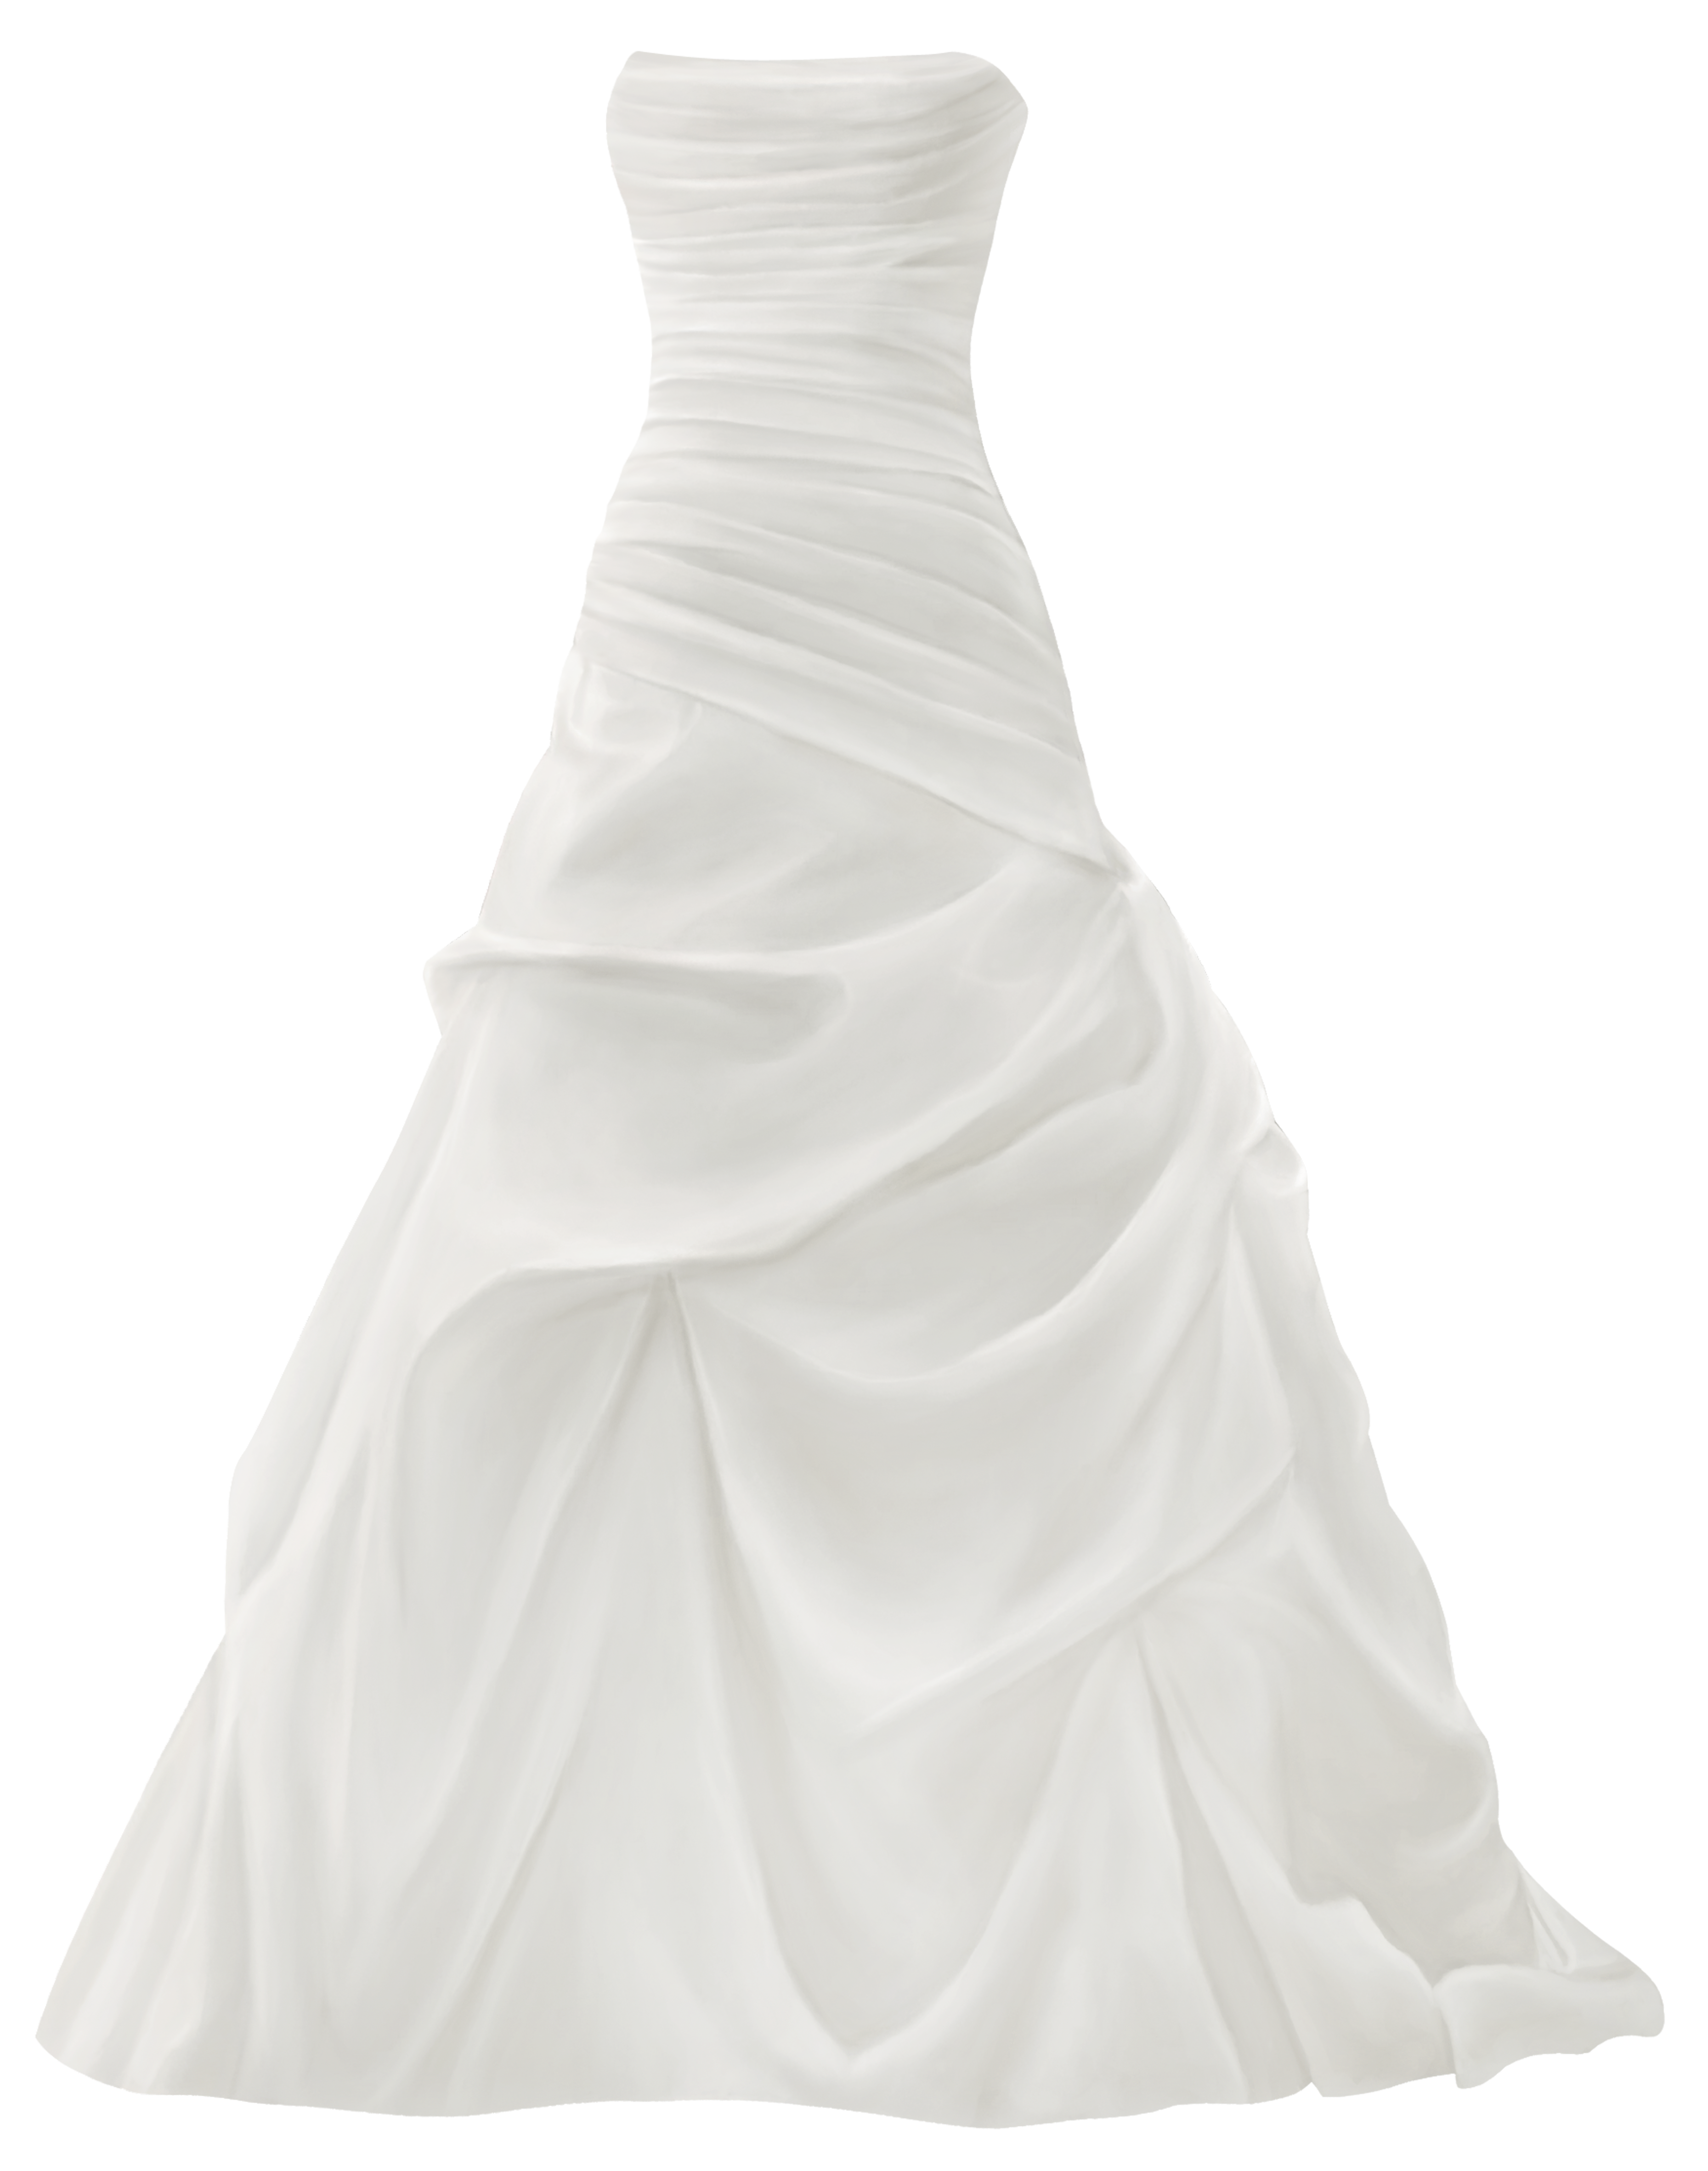 Wedding Dresses Silhouette at GetDrawings.com | Free for personal ...